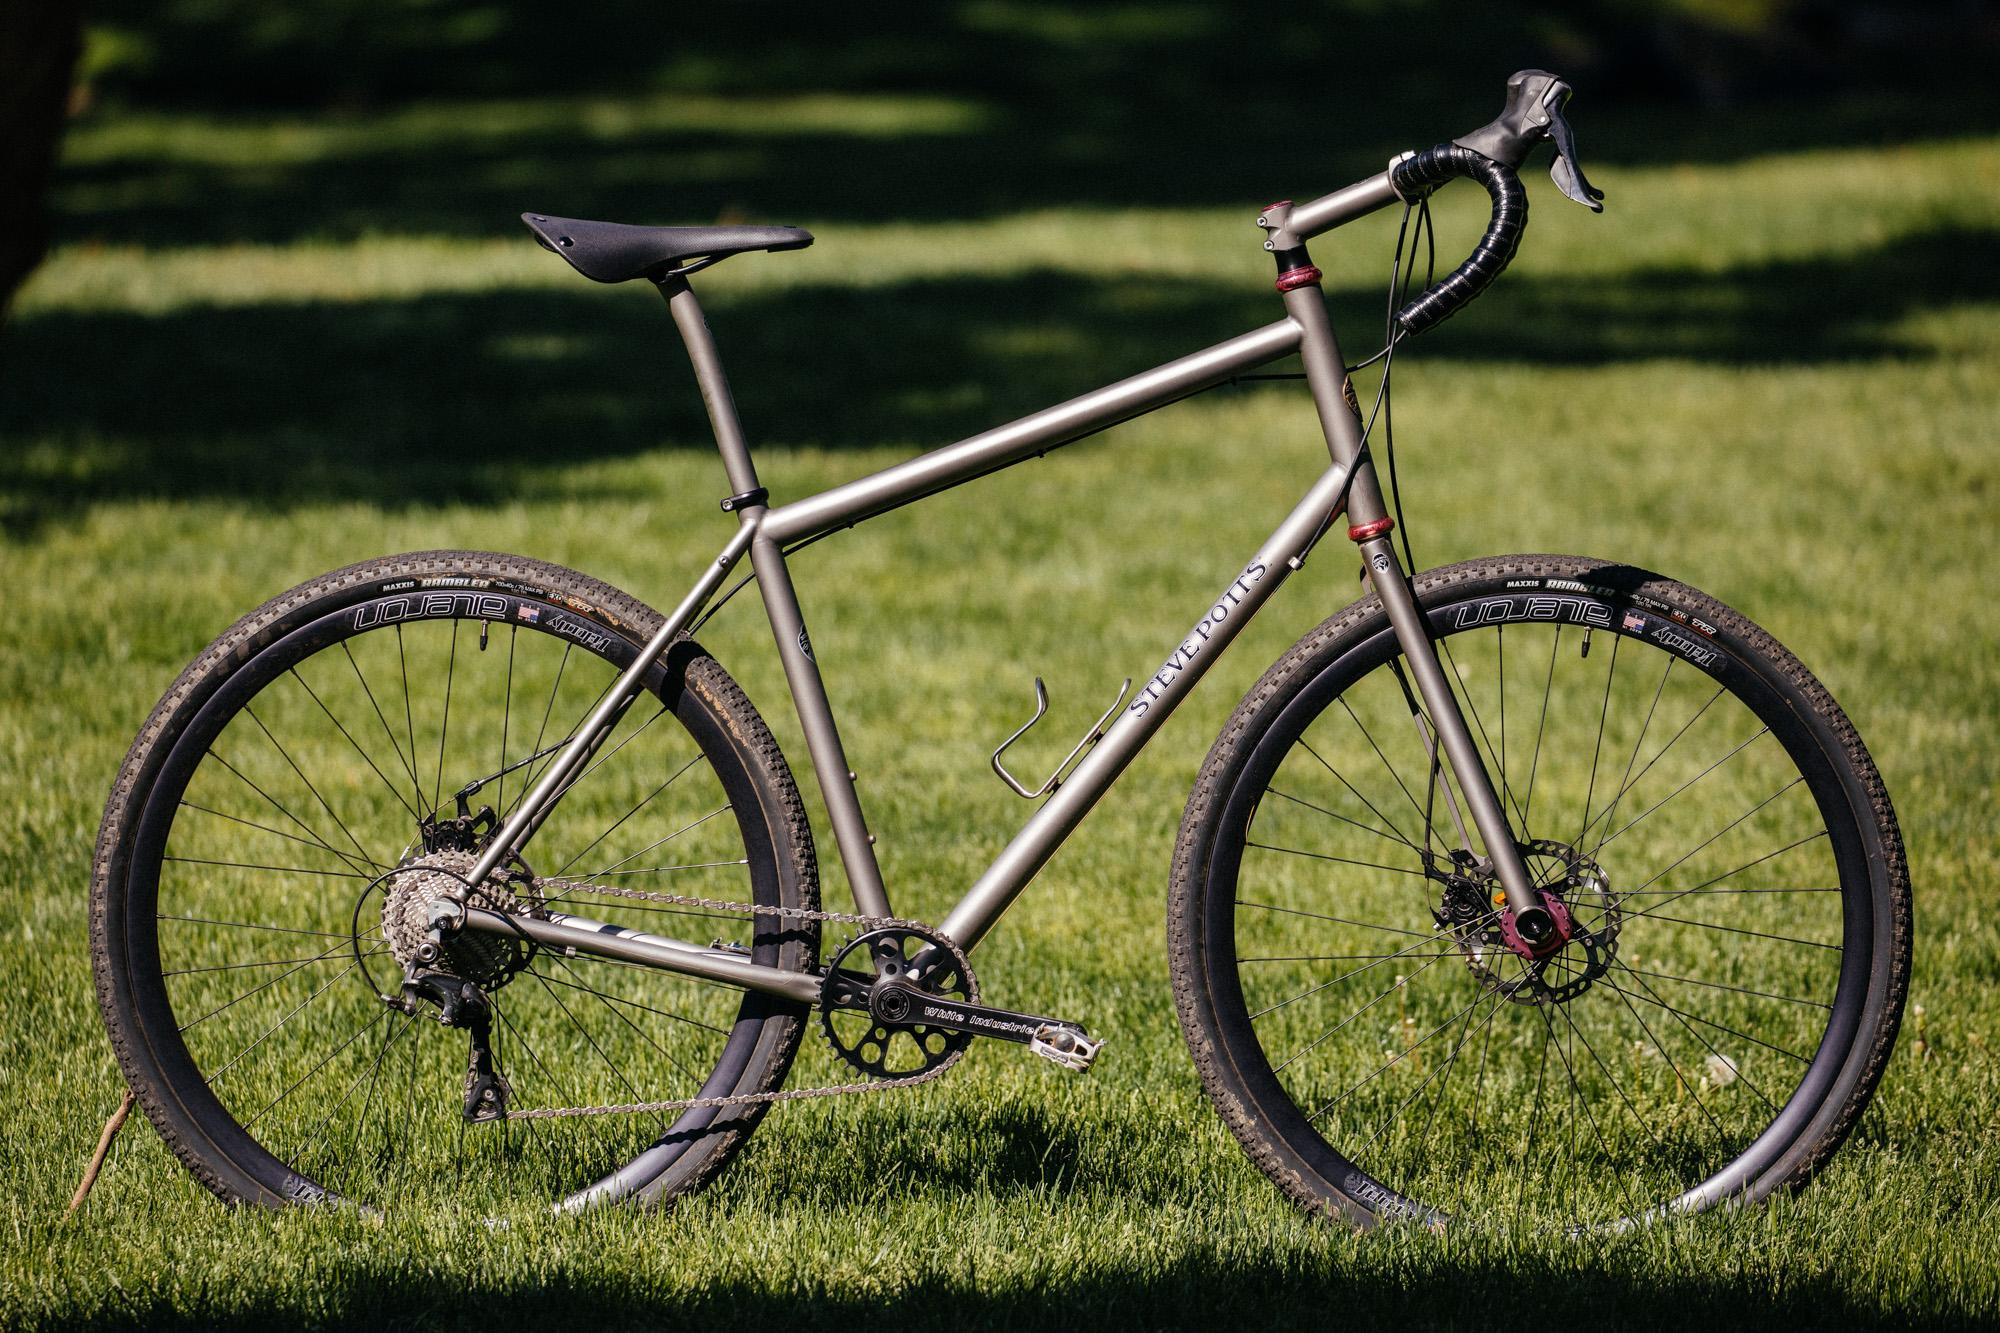 Steve Potts' Personal Titanium All Road Bike